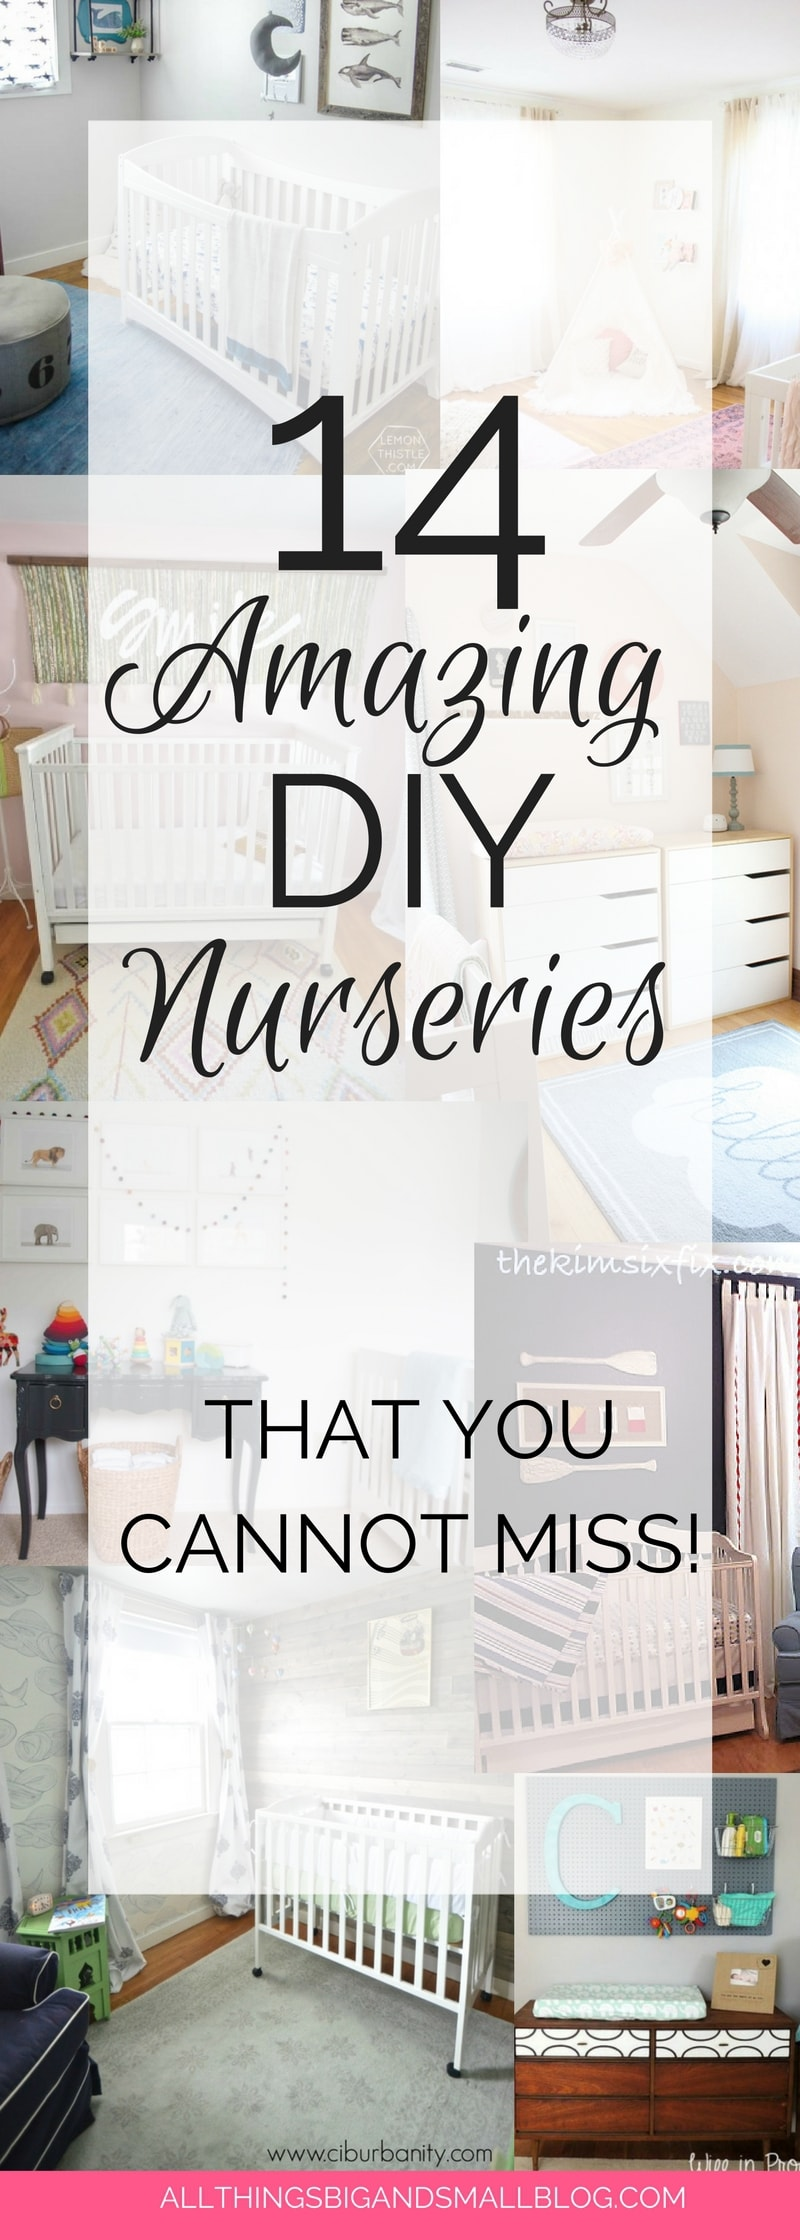 Nursery Ideas You Have to See | DIY Nurseries that budget-friendly nursery ideas for your baby room! Round up by ALL THINGS BIG AND SMALL